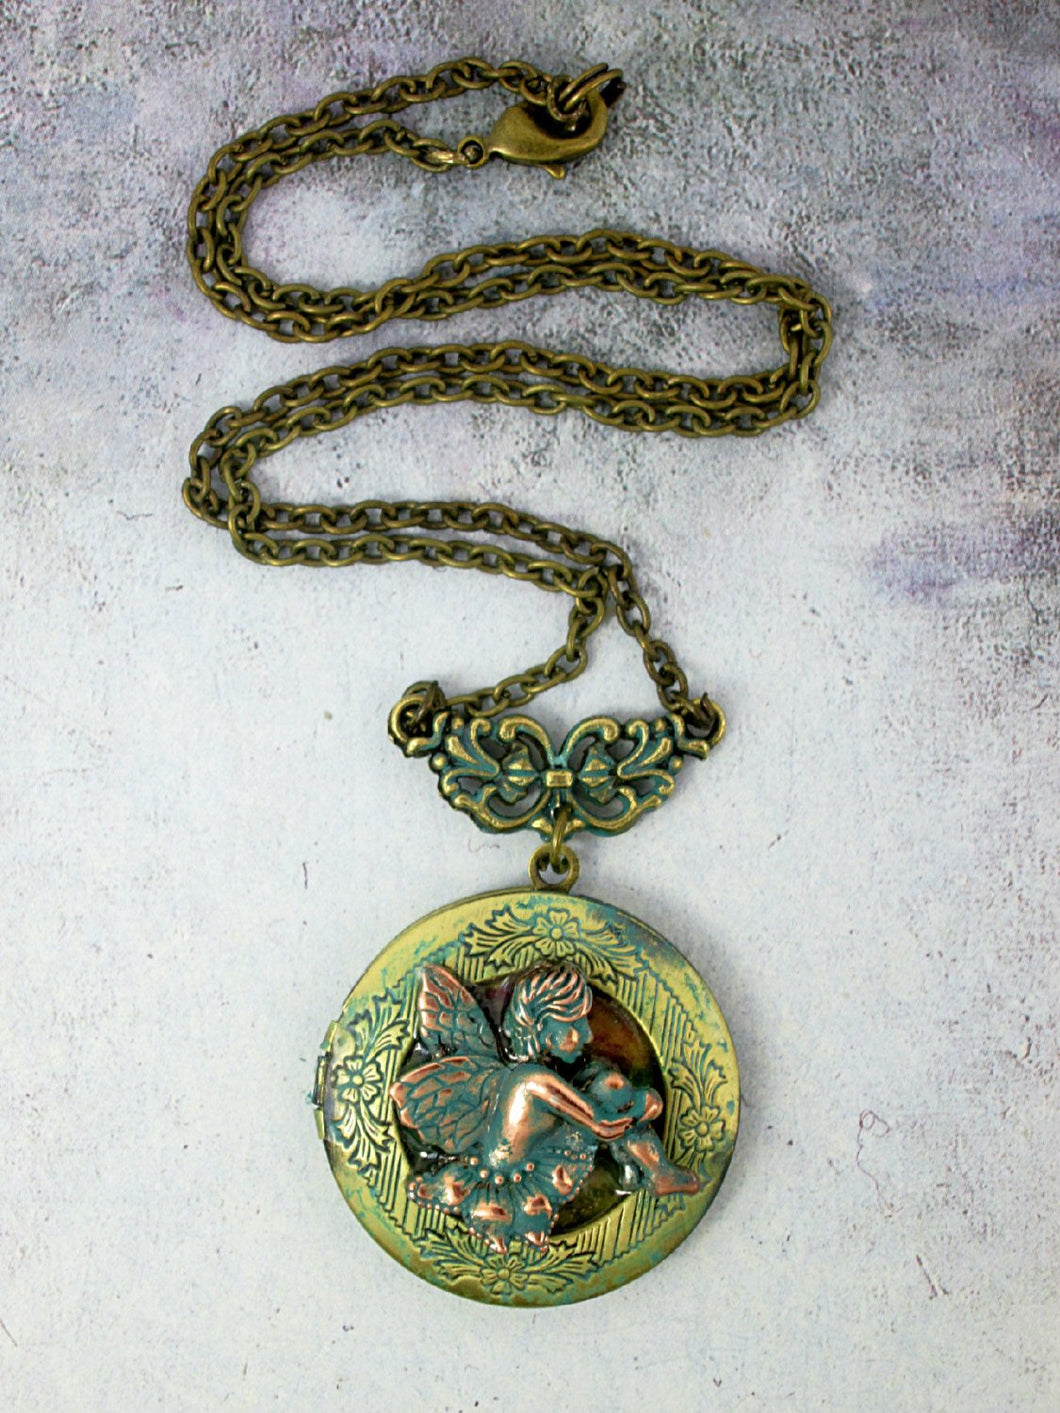 cherub locket